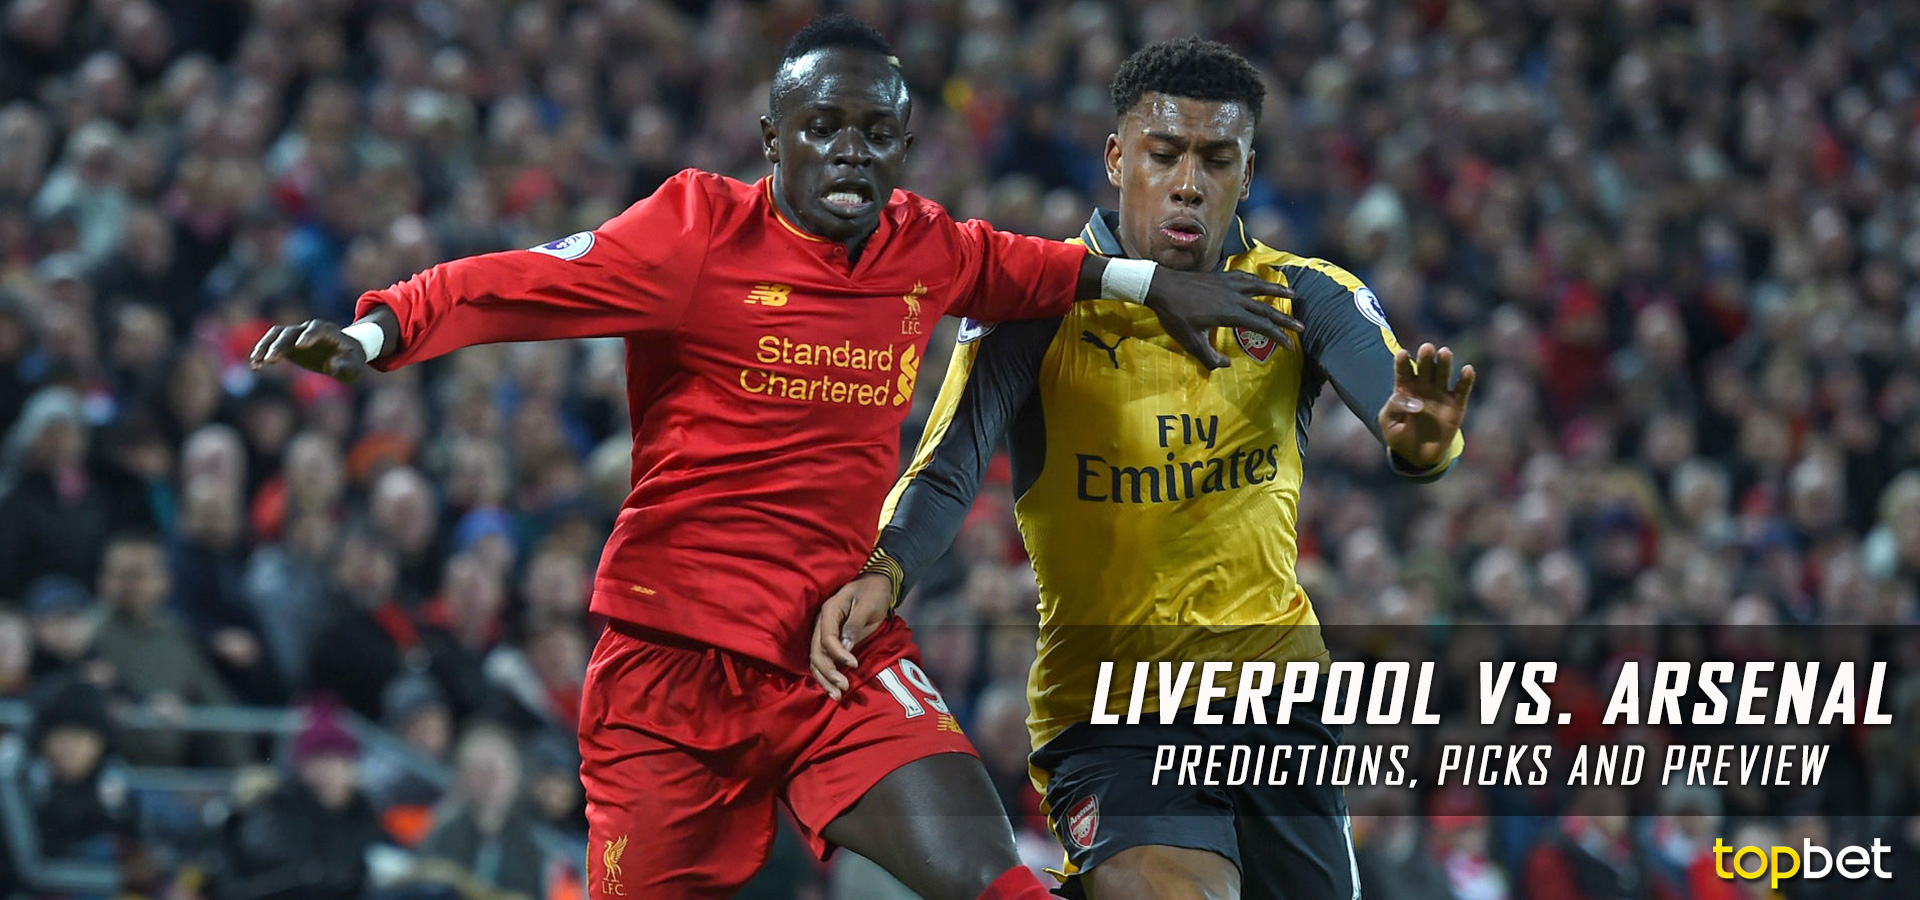 liverpool vs arsenal - photo #1